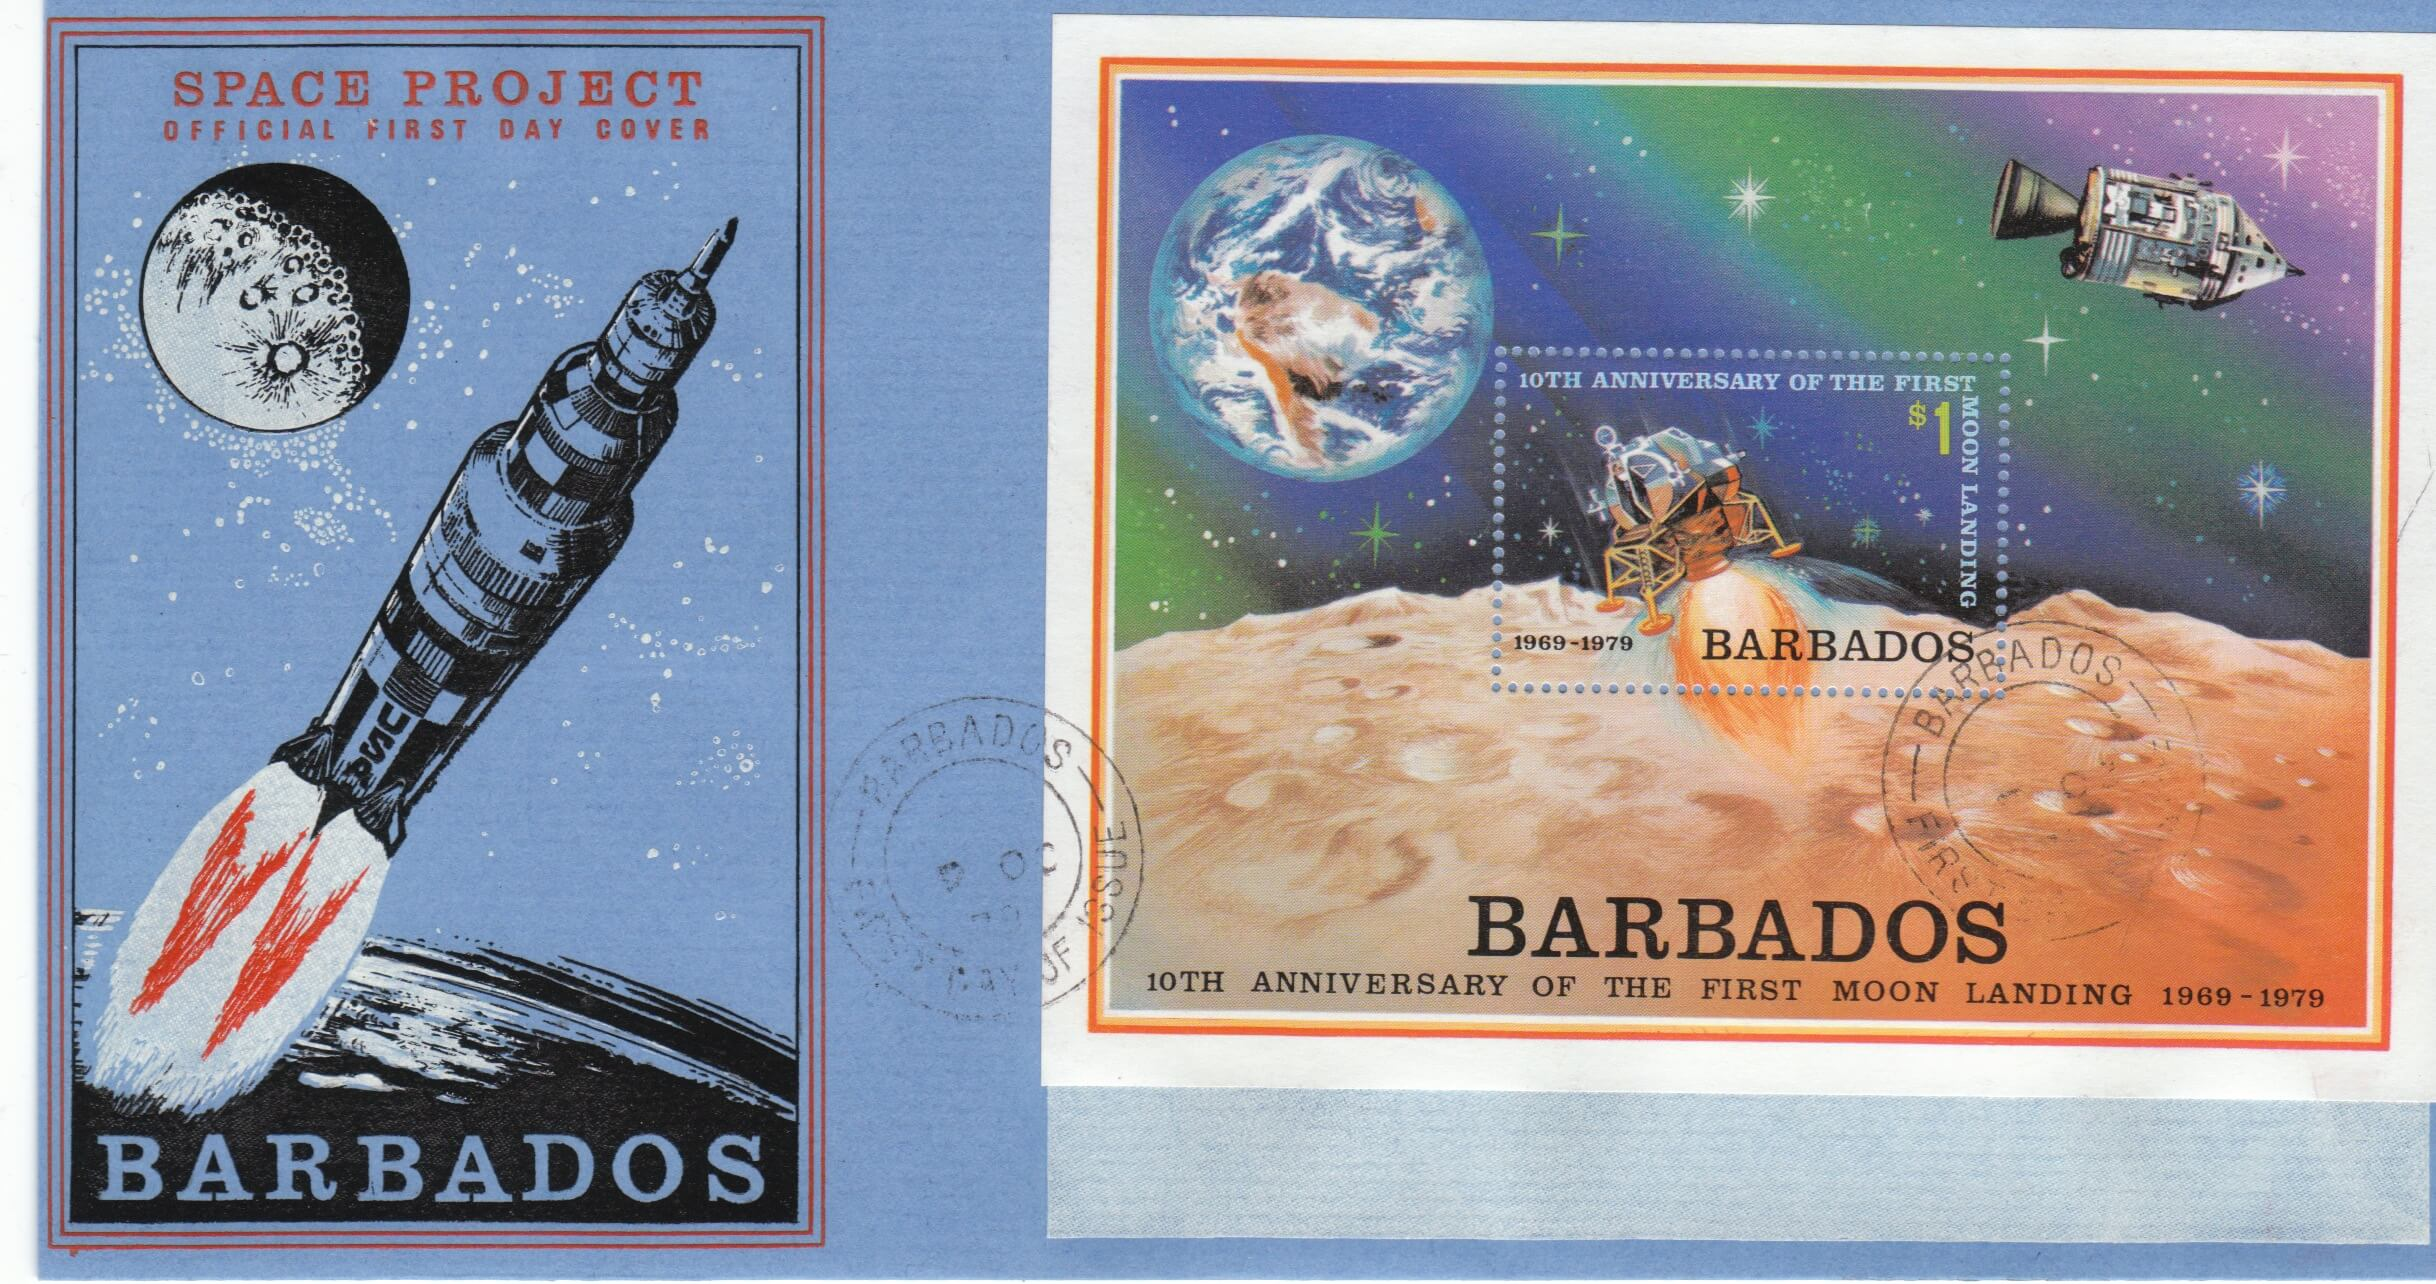 Barbados 1979 | SGMS 645 Space Project Commemorations Mini Sheet